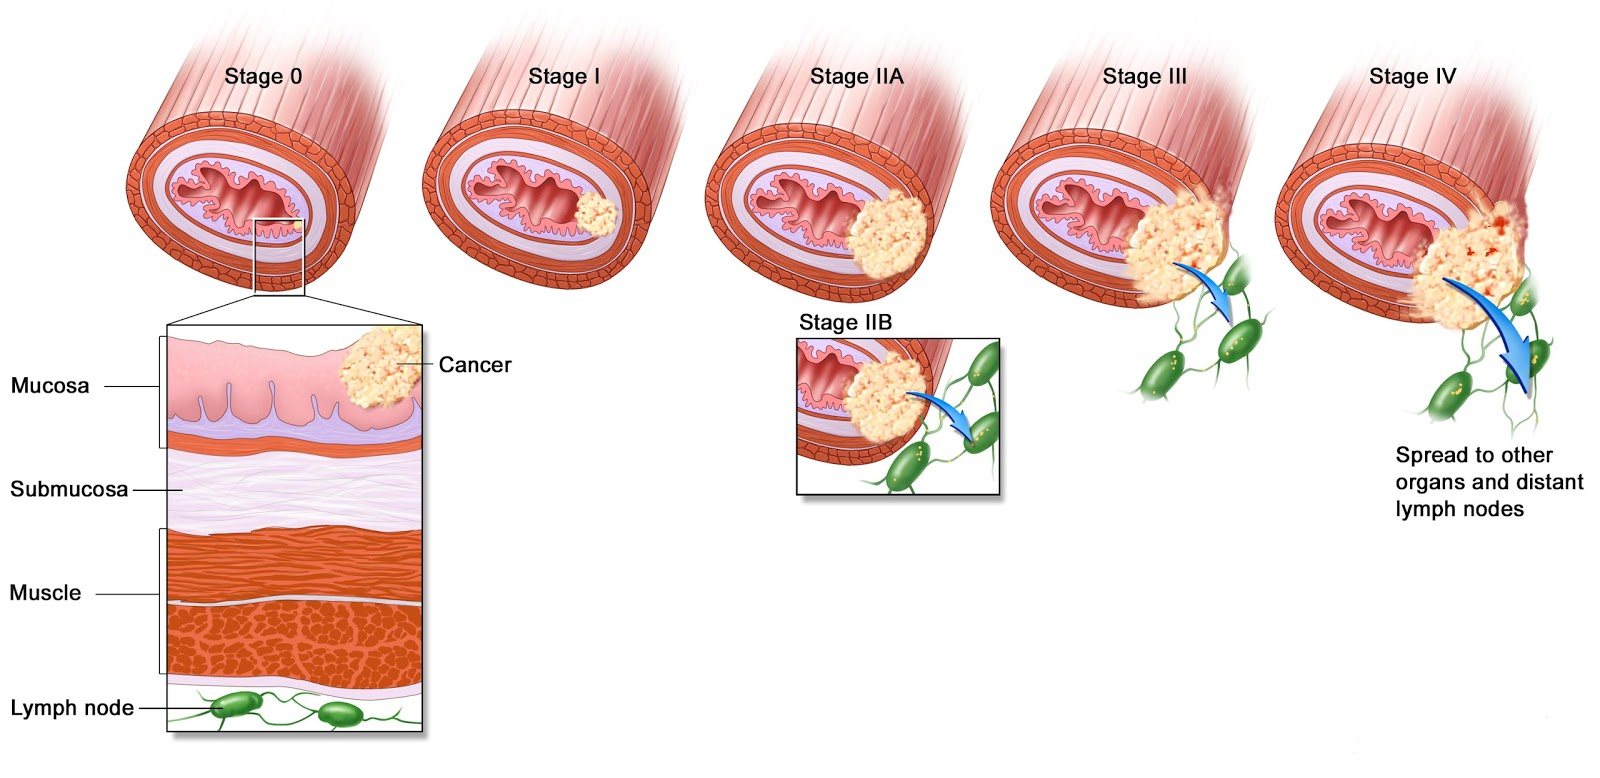 Pathology Outlines - TNM staging of esophageal carcinomas